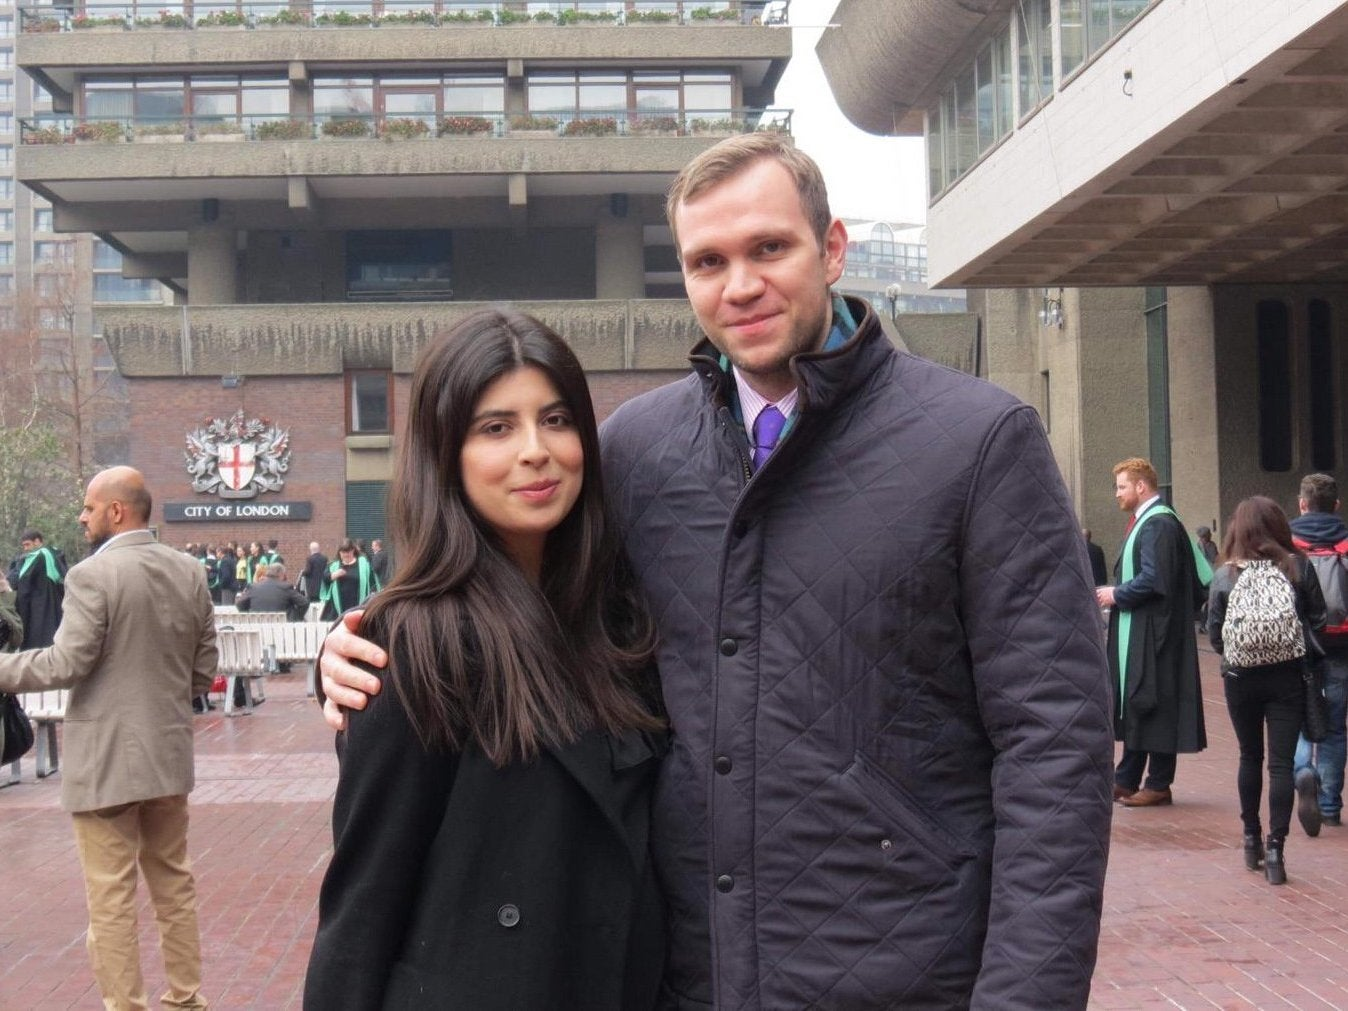 In the wake of Matthew Hedges' imprisonment, the UK government must review its cosy relationship with the UAE